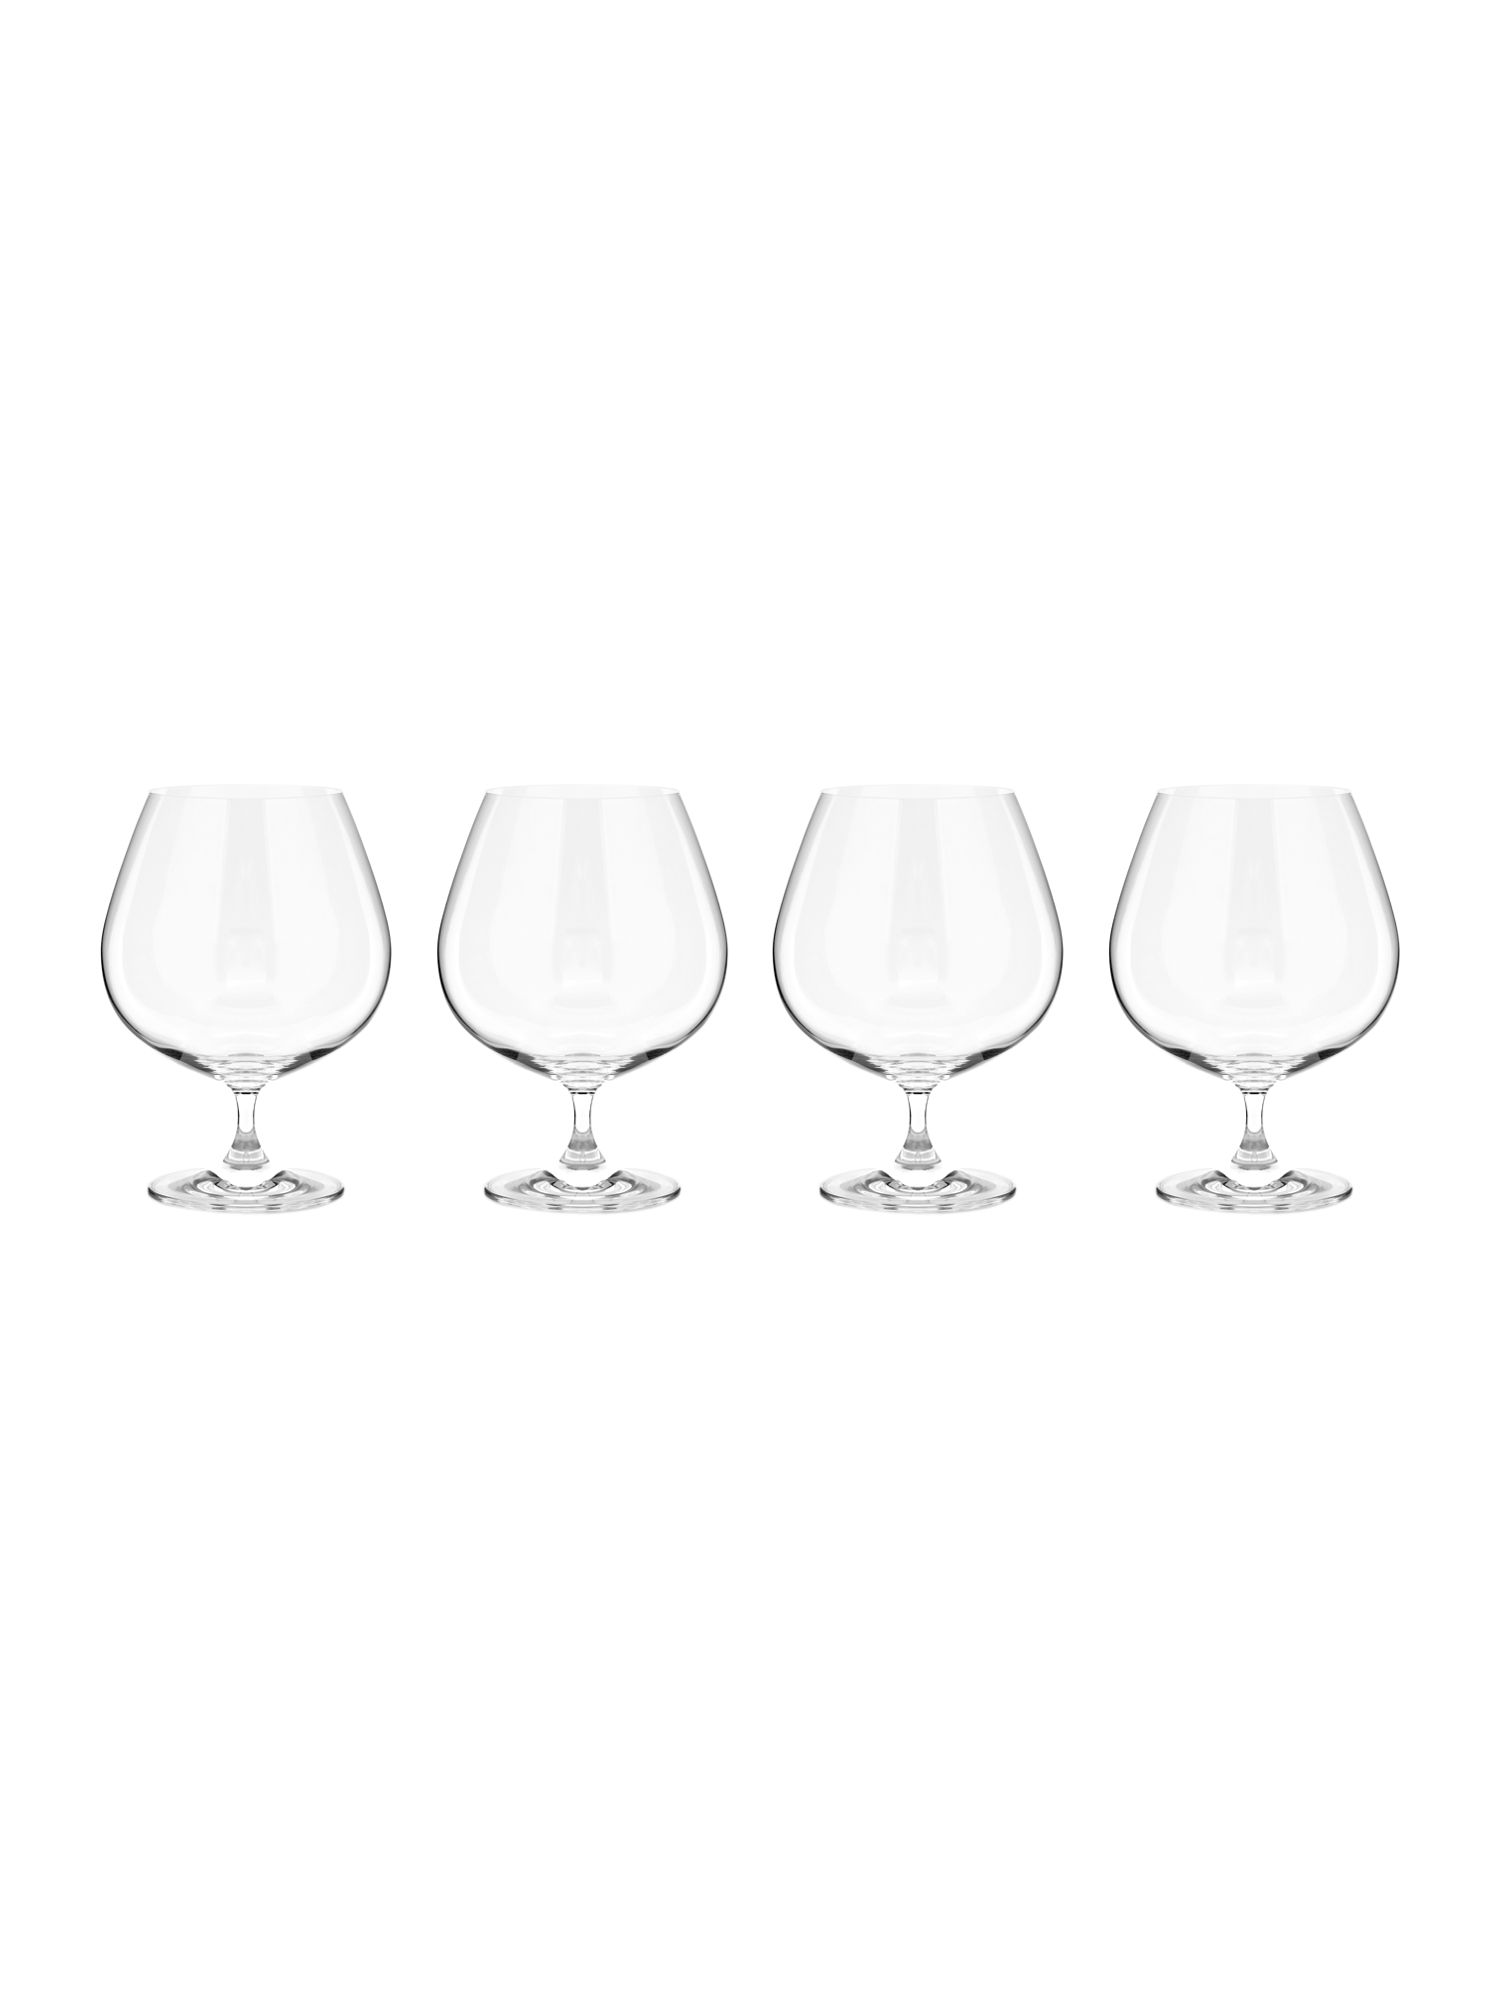 Ella brandy glasses, set of 4